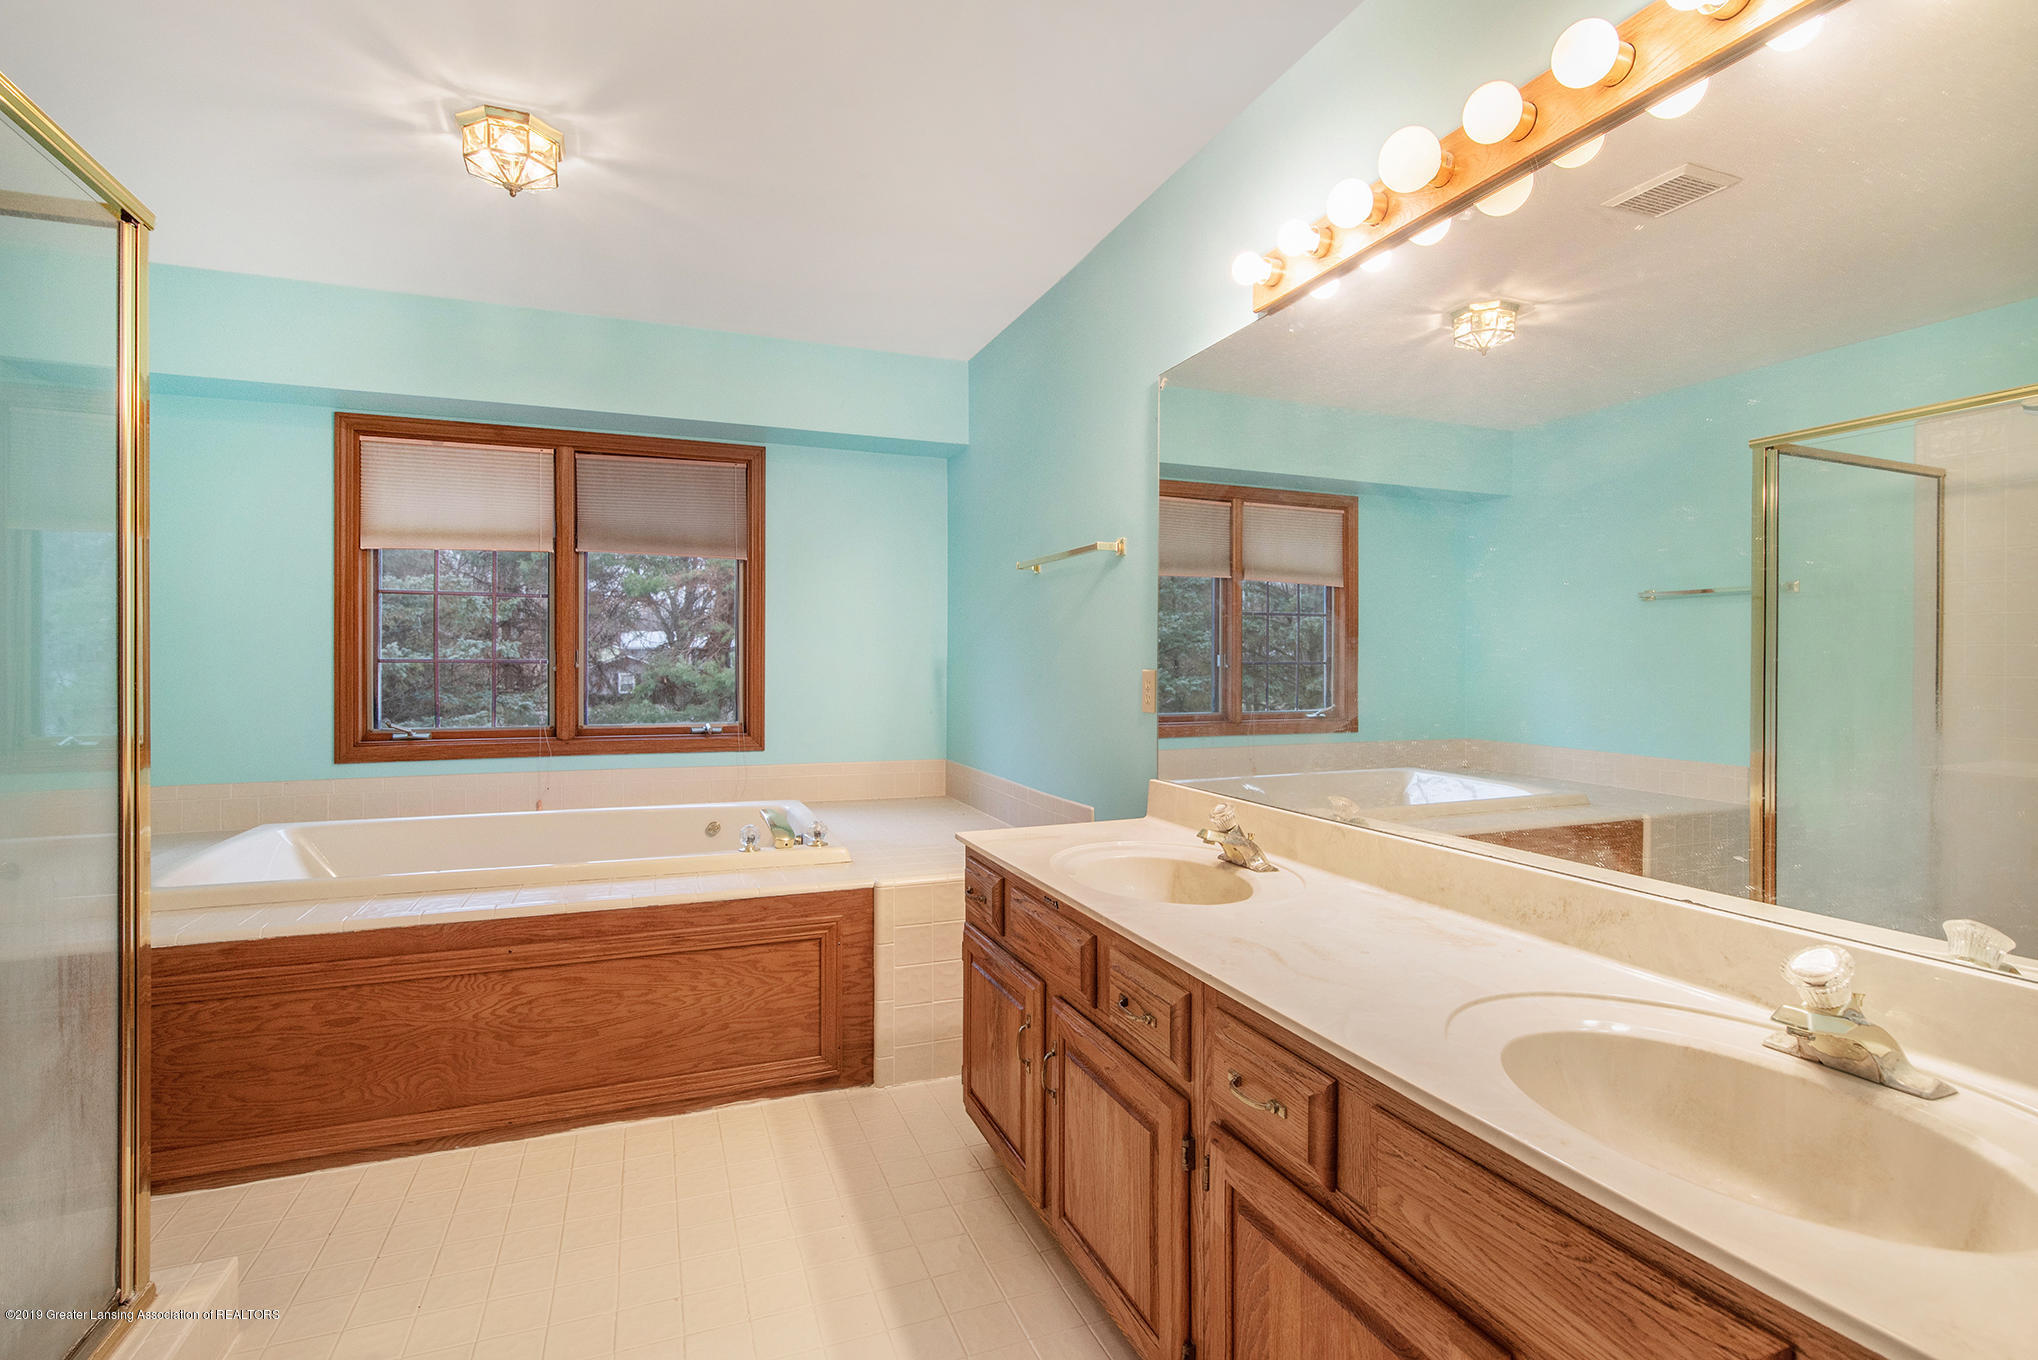 3752 Chippendale Dr - 4 - 15